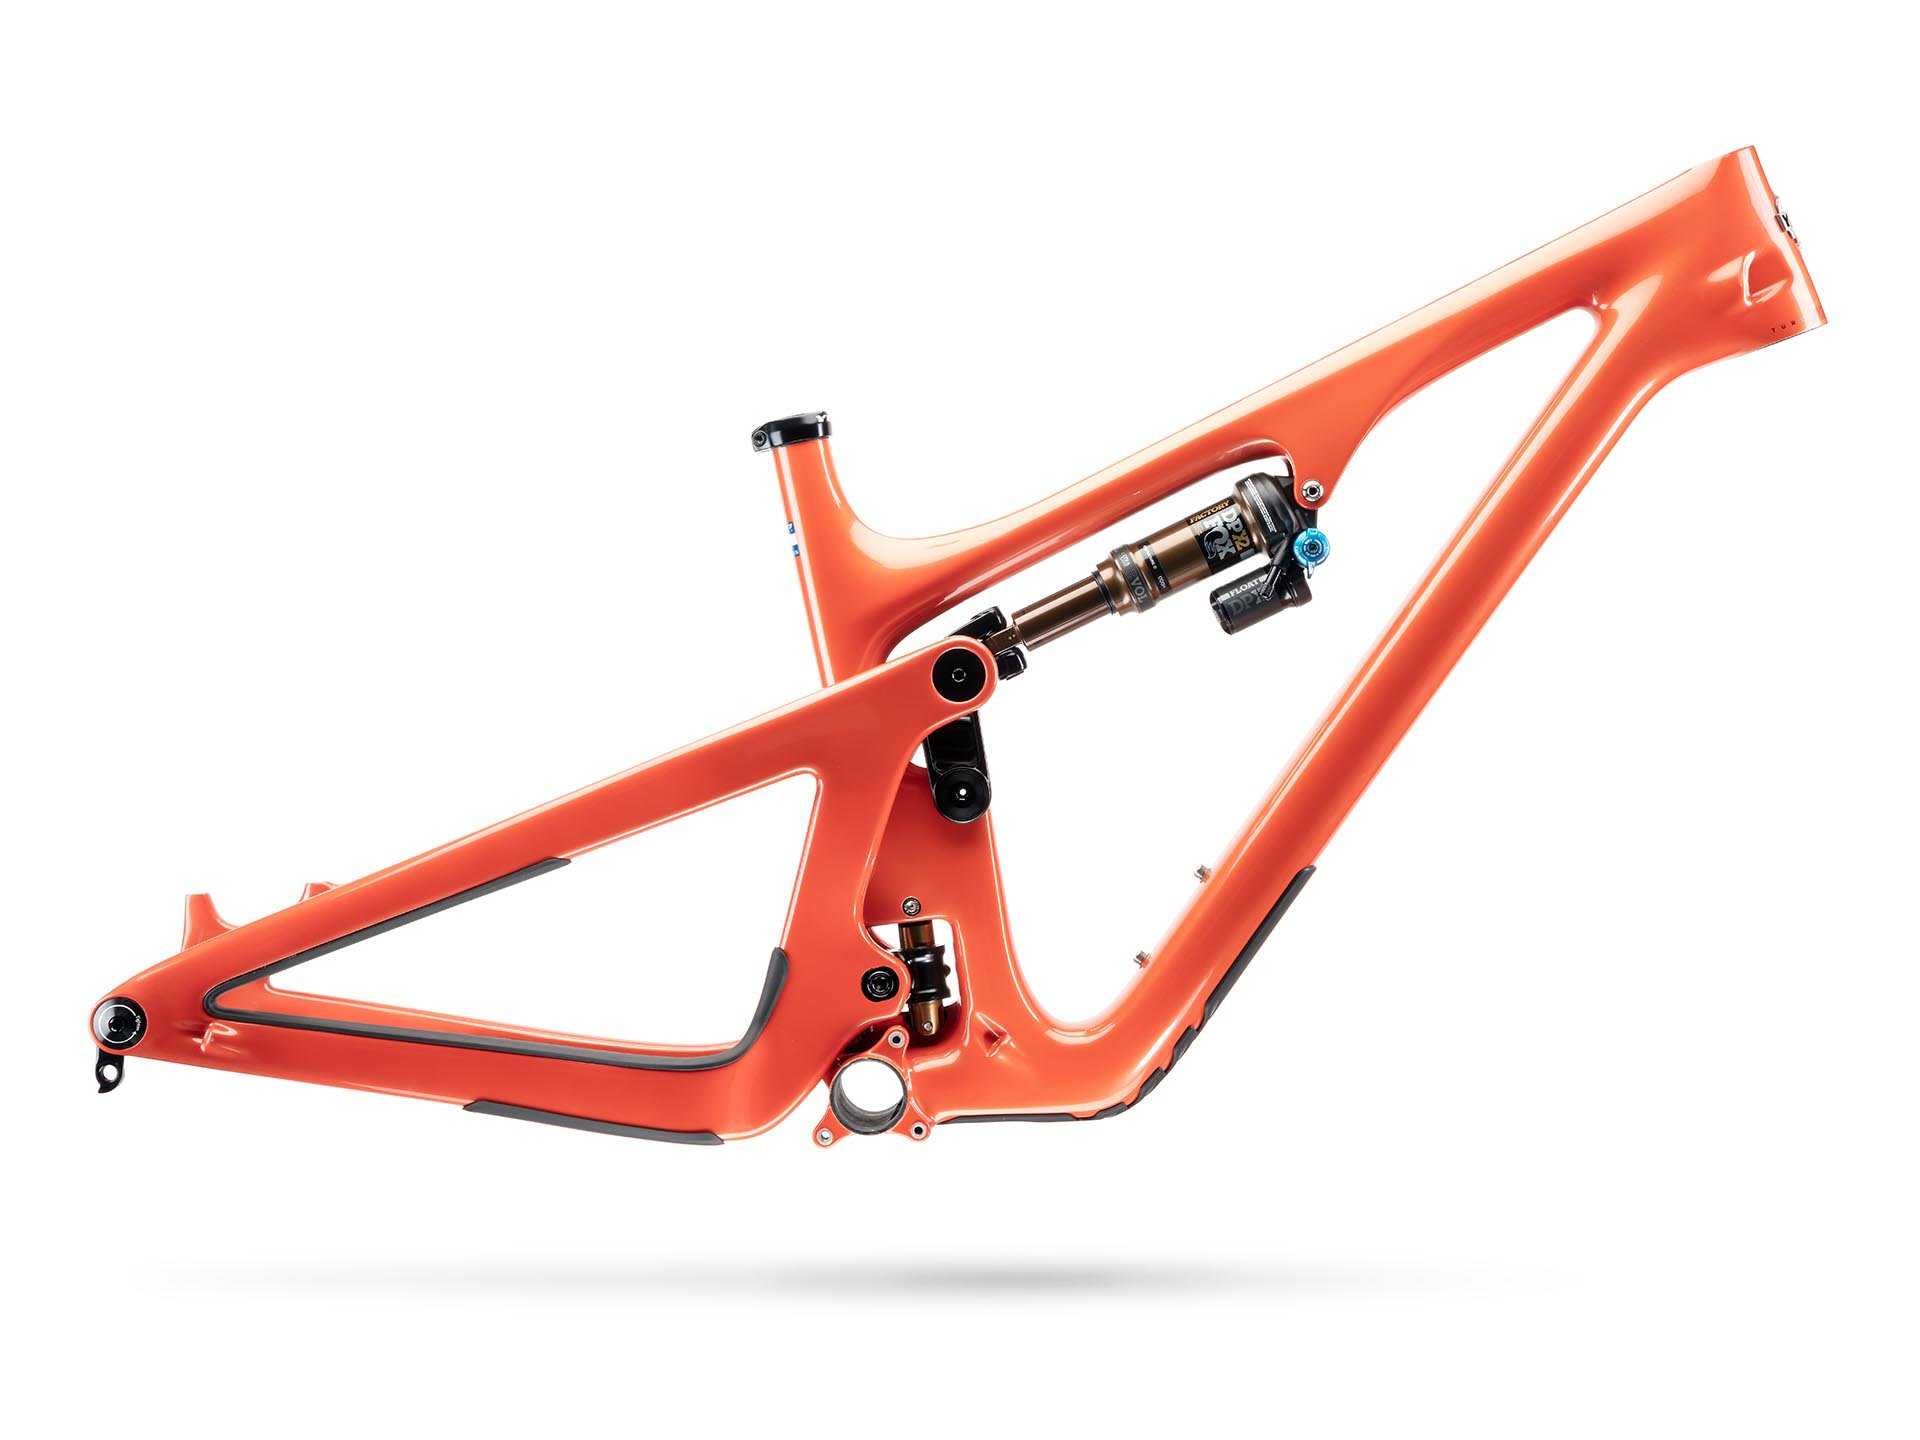 2020_YetiCycles_SB140_Frame_Inferno_01 copy.jpg